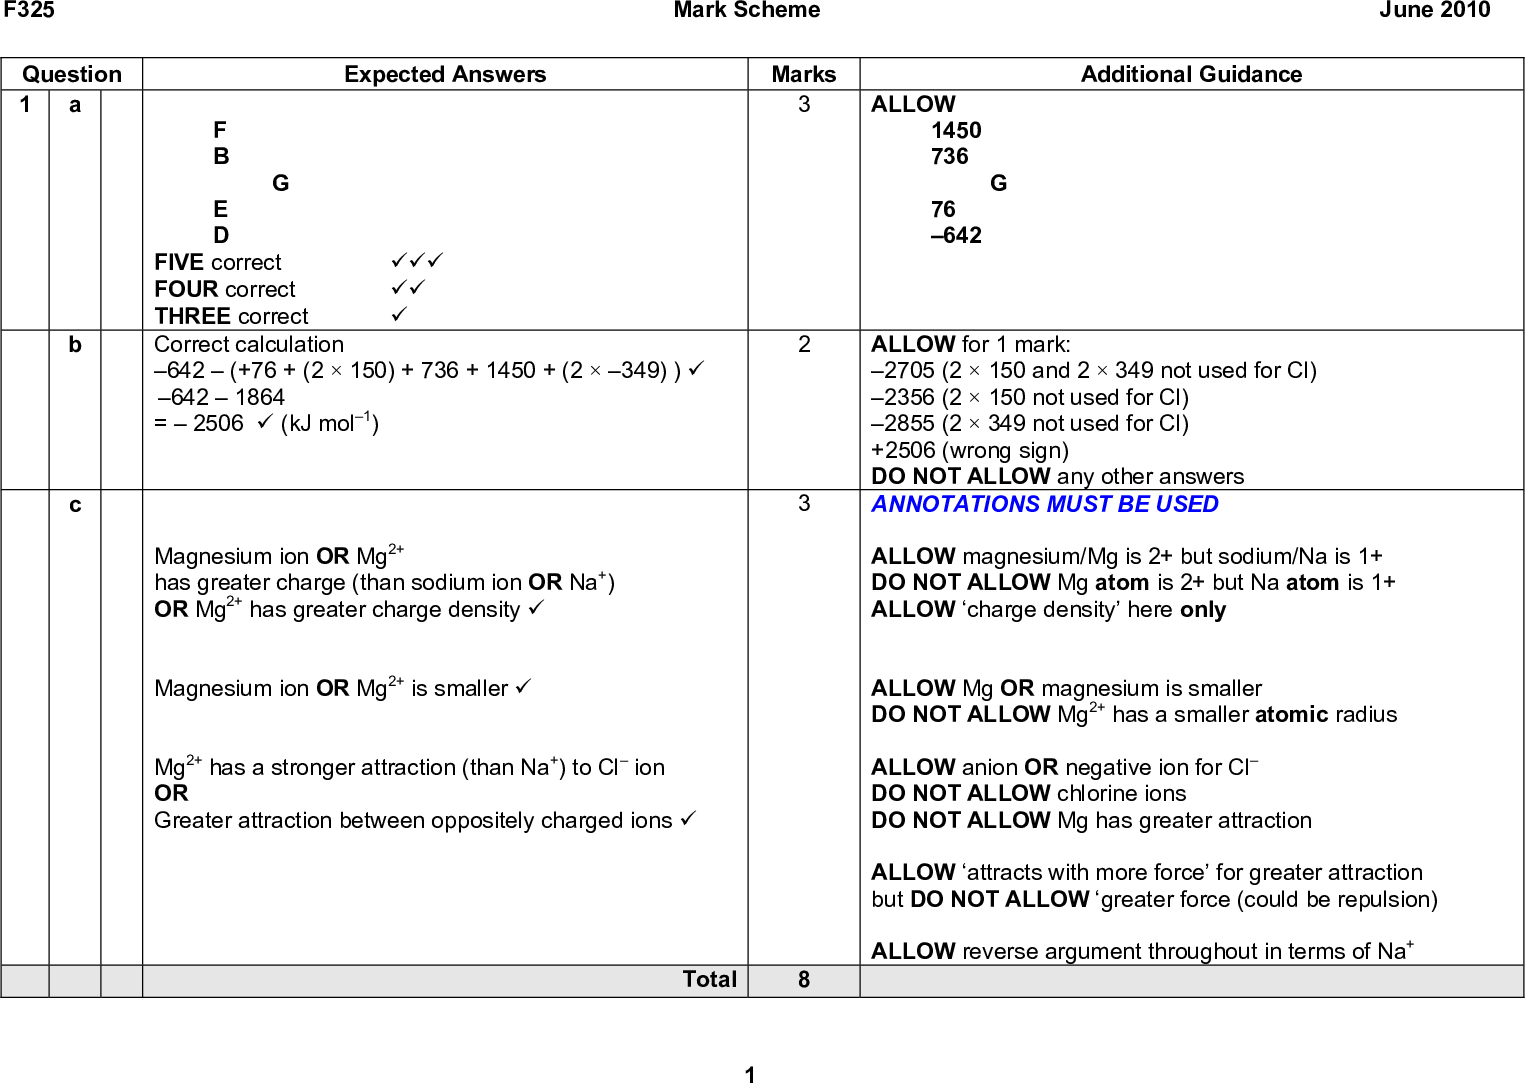 F325 Question 1 Expected Answers Mark Scheme Marks F B E D G FIVE correct FOUR correct THREE correct (cid:57)(cid:57)(cid:57) (cid:57)(cid:57) (cid:57) Correct calculation June 2010 Additional Guidance ALLOW 1450 736 G 76 642 ALLOW for 1 mark: 2705 (2150 and 2349 not used for Cl) 2356 (2150 not used for Cl) 2855 (2349 not used for Cl) +2506 (wrong sign) DO NOT ALLOW any other answers ANNOTATIONS MUST BE USED ALLOW magnesium/Mg is 2+ but sodium/Na is 1+ DO NOT ALLOW Mg atom is 2+ but Na atom is 1+ ALLOW charge density here only ALLOW Mg OR magnesium is smaller DO NOT ALLOW Mg2+ has a smaller atomic radius ALLOW anion OR negative ion for Cl DO NOT ALLOW chlorine ions DO NOT ALLOW Mg has greater attraction ALLOW attracts with more force for greater attraction but DO NOT ALLOW greater force (could be repulsion) ALLOW reverse argument throughout in terms of Na+ 642(+76 + (2150) + 736 + 1450 + (2349) ) (cid:57) 6421864 =2506 (cid:57) (kJ mol1) Magnesium ion OR Mg2+ has greater charge (than sodium ion OR Na+) OR Mg2+ has greater charge density (cid:57) Magnesium ion OR Mg2+ is smaller (cid:57) Mg2+ has a stronger attraction (than Na+) to Cl ion OR Greater attraction between oppositely charged ions (cid:57) Total<br />